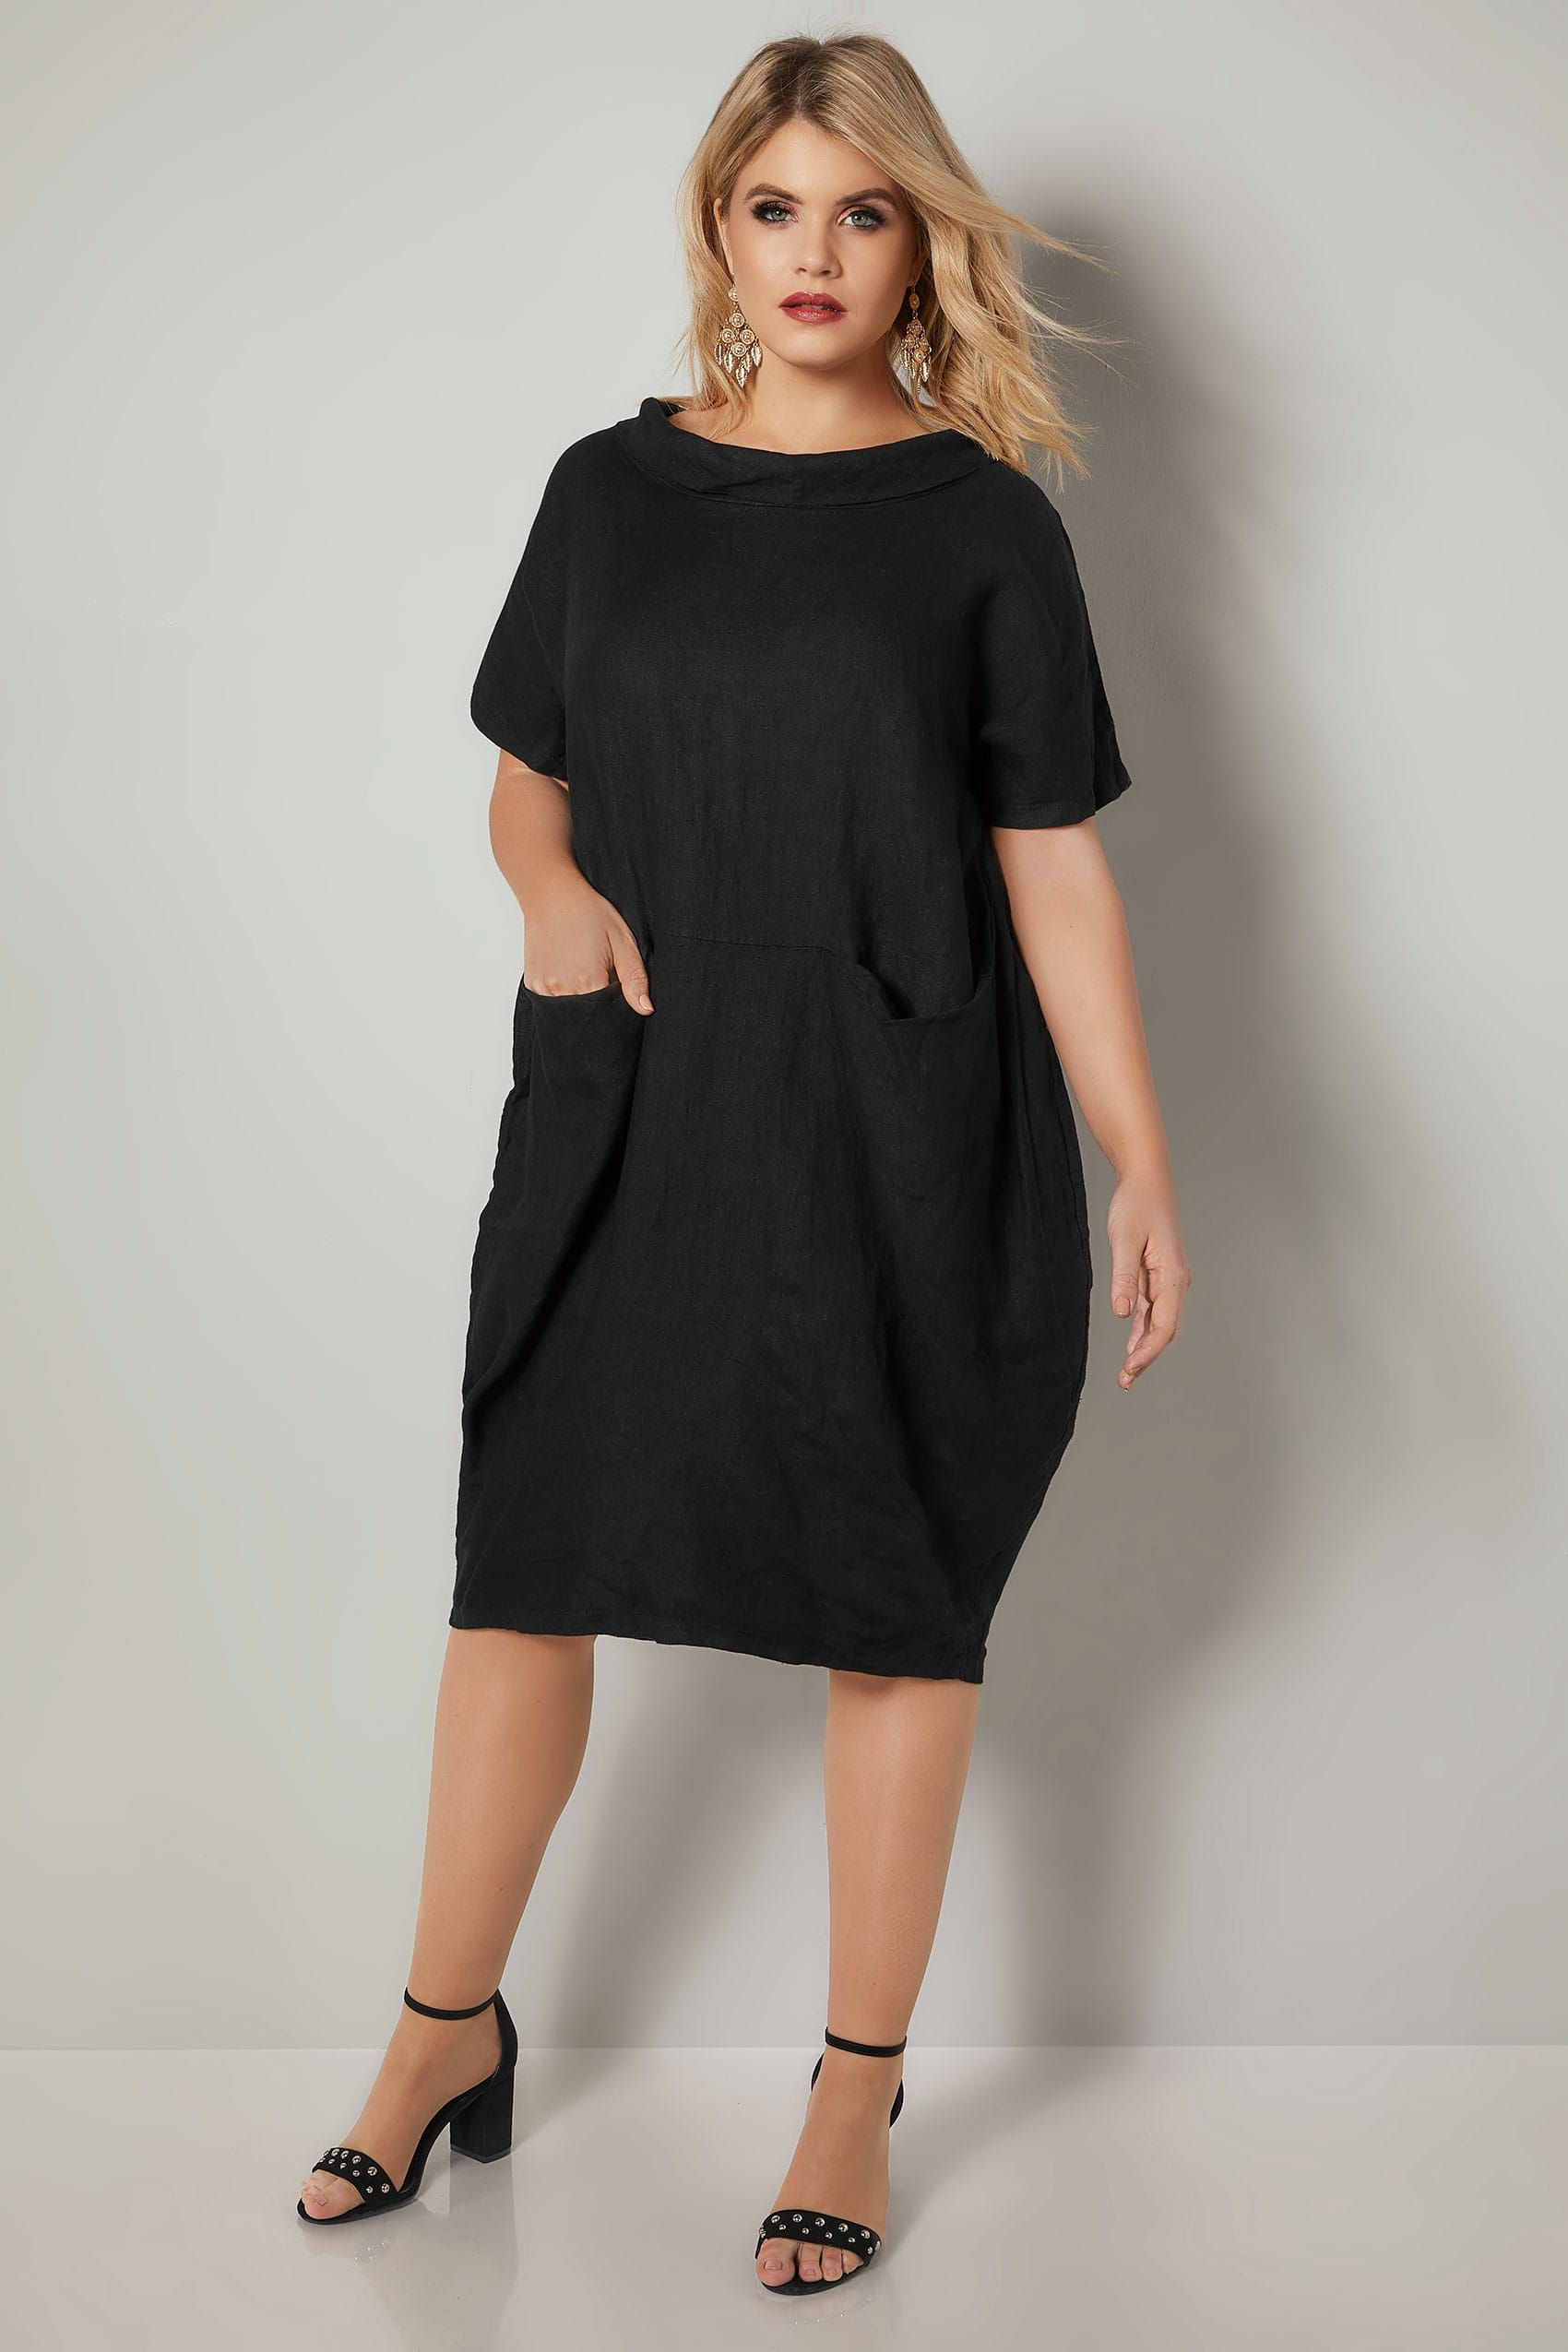 90e01f2a40a PAPRIKA Black Oversized Dress With Front Pockets in 2019 ...